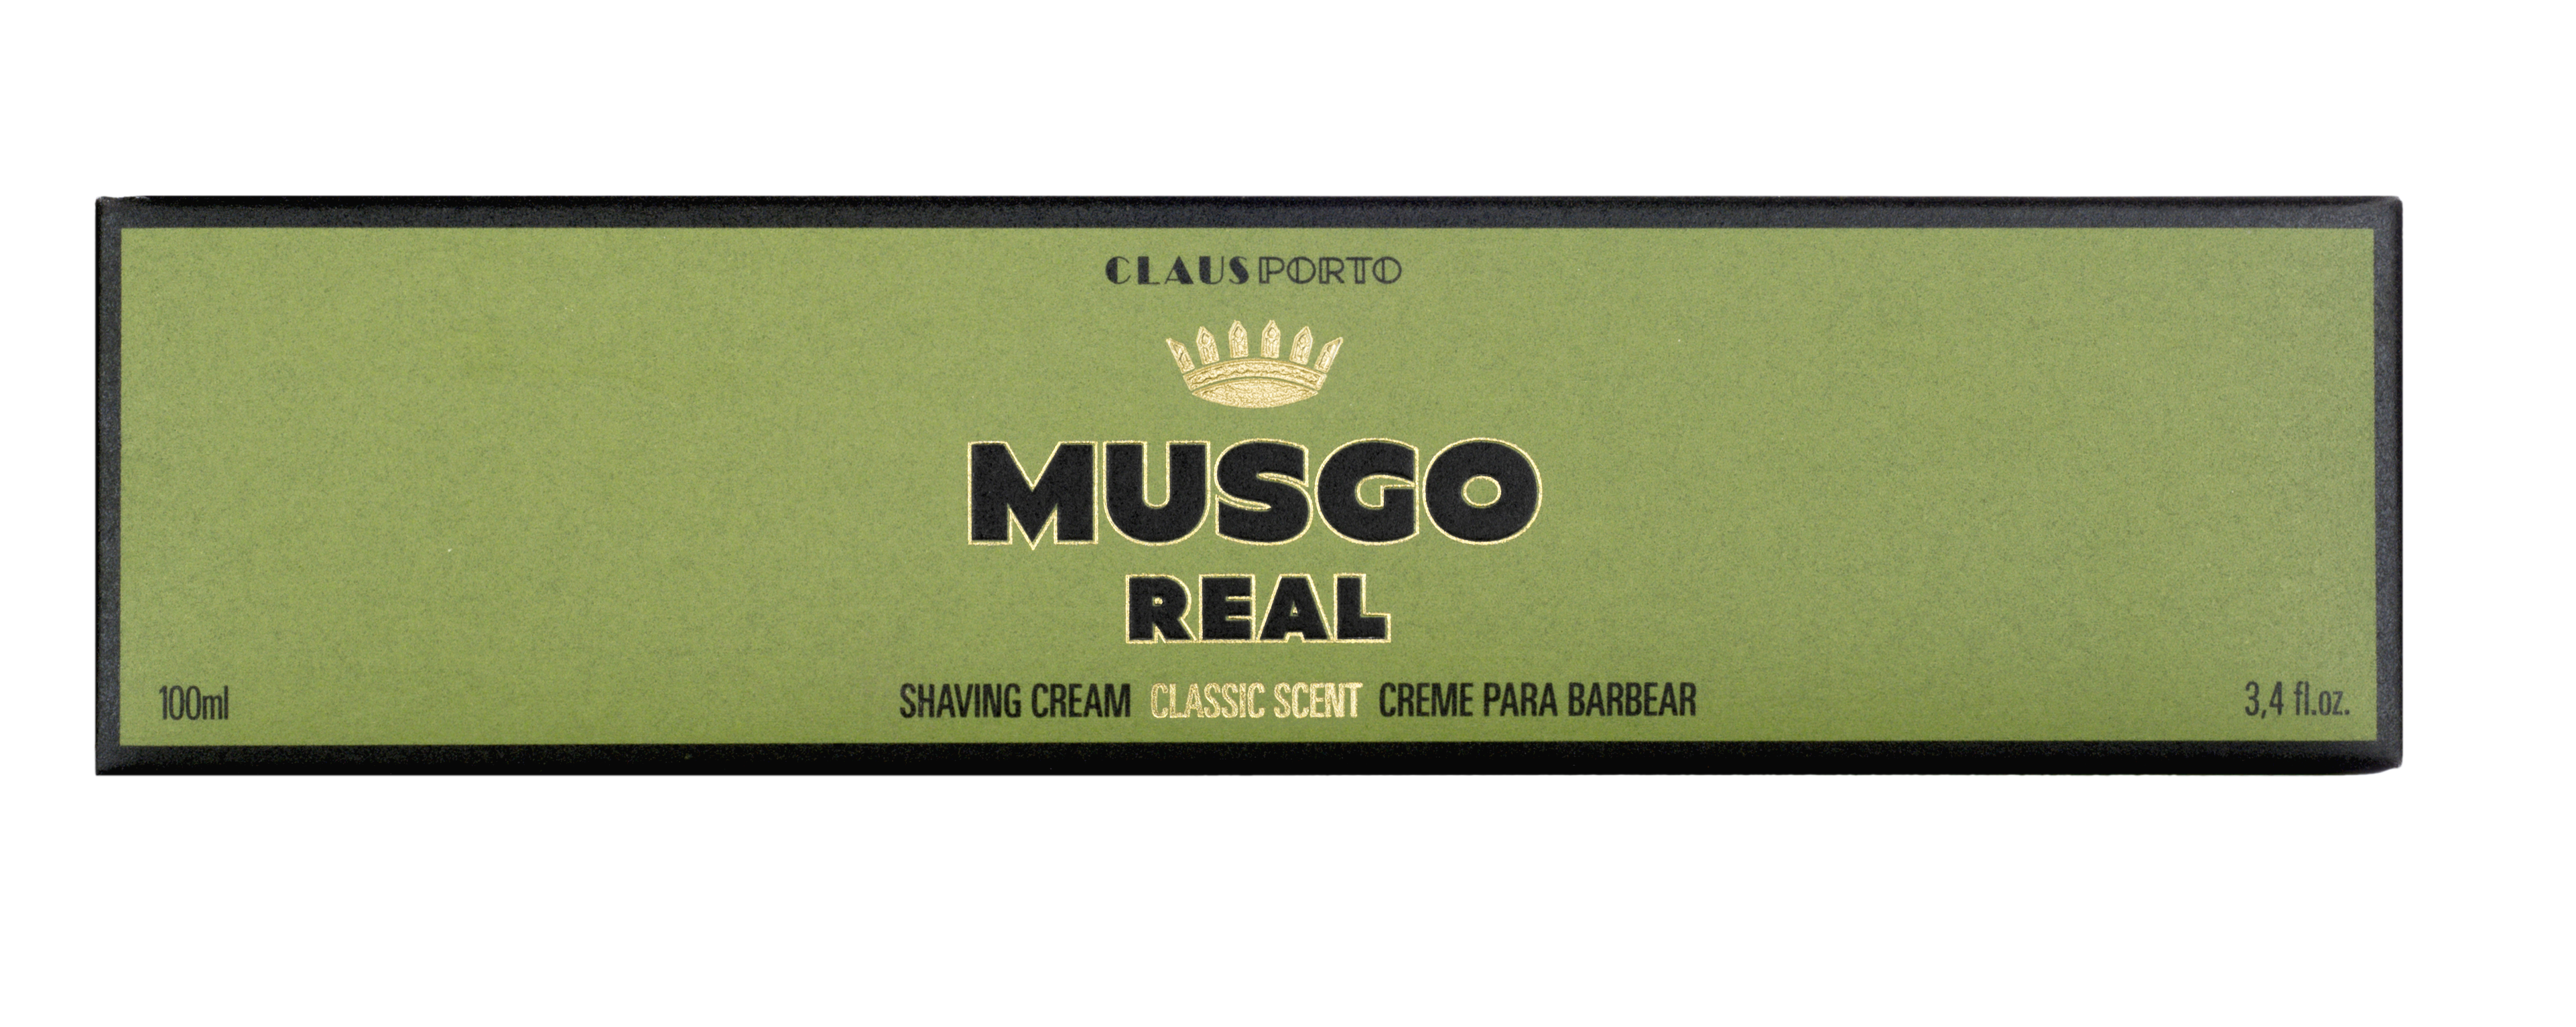 Musgo Real - Store Opening Soon